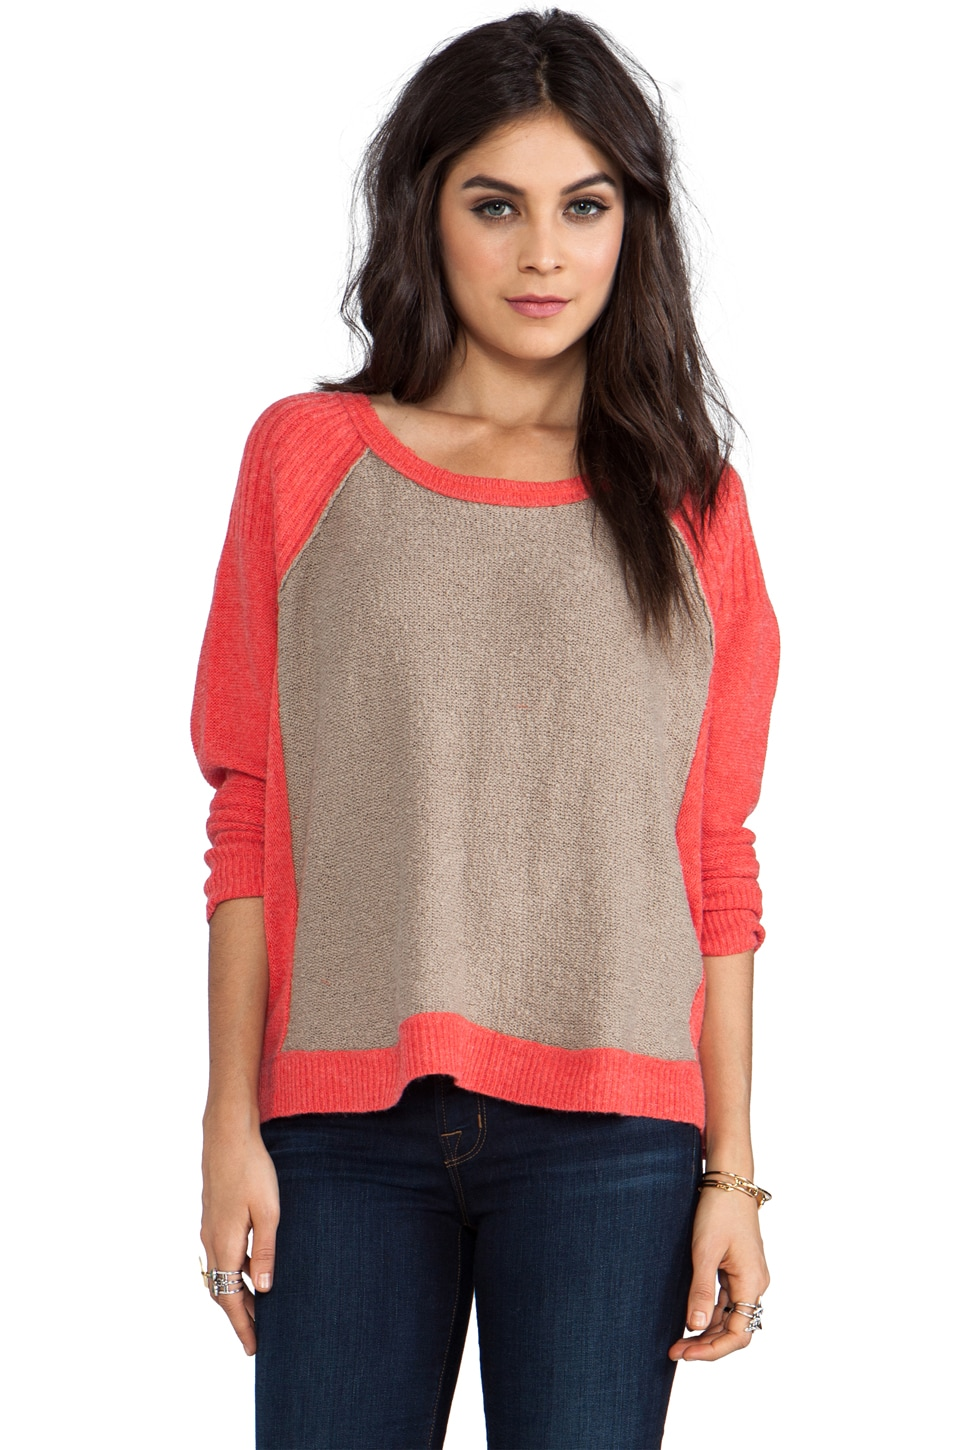 Free People Tabbard Pullover in Cherry/Taupe